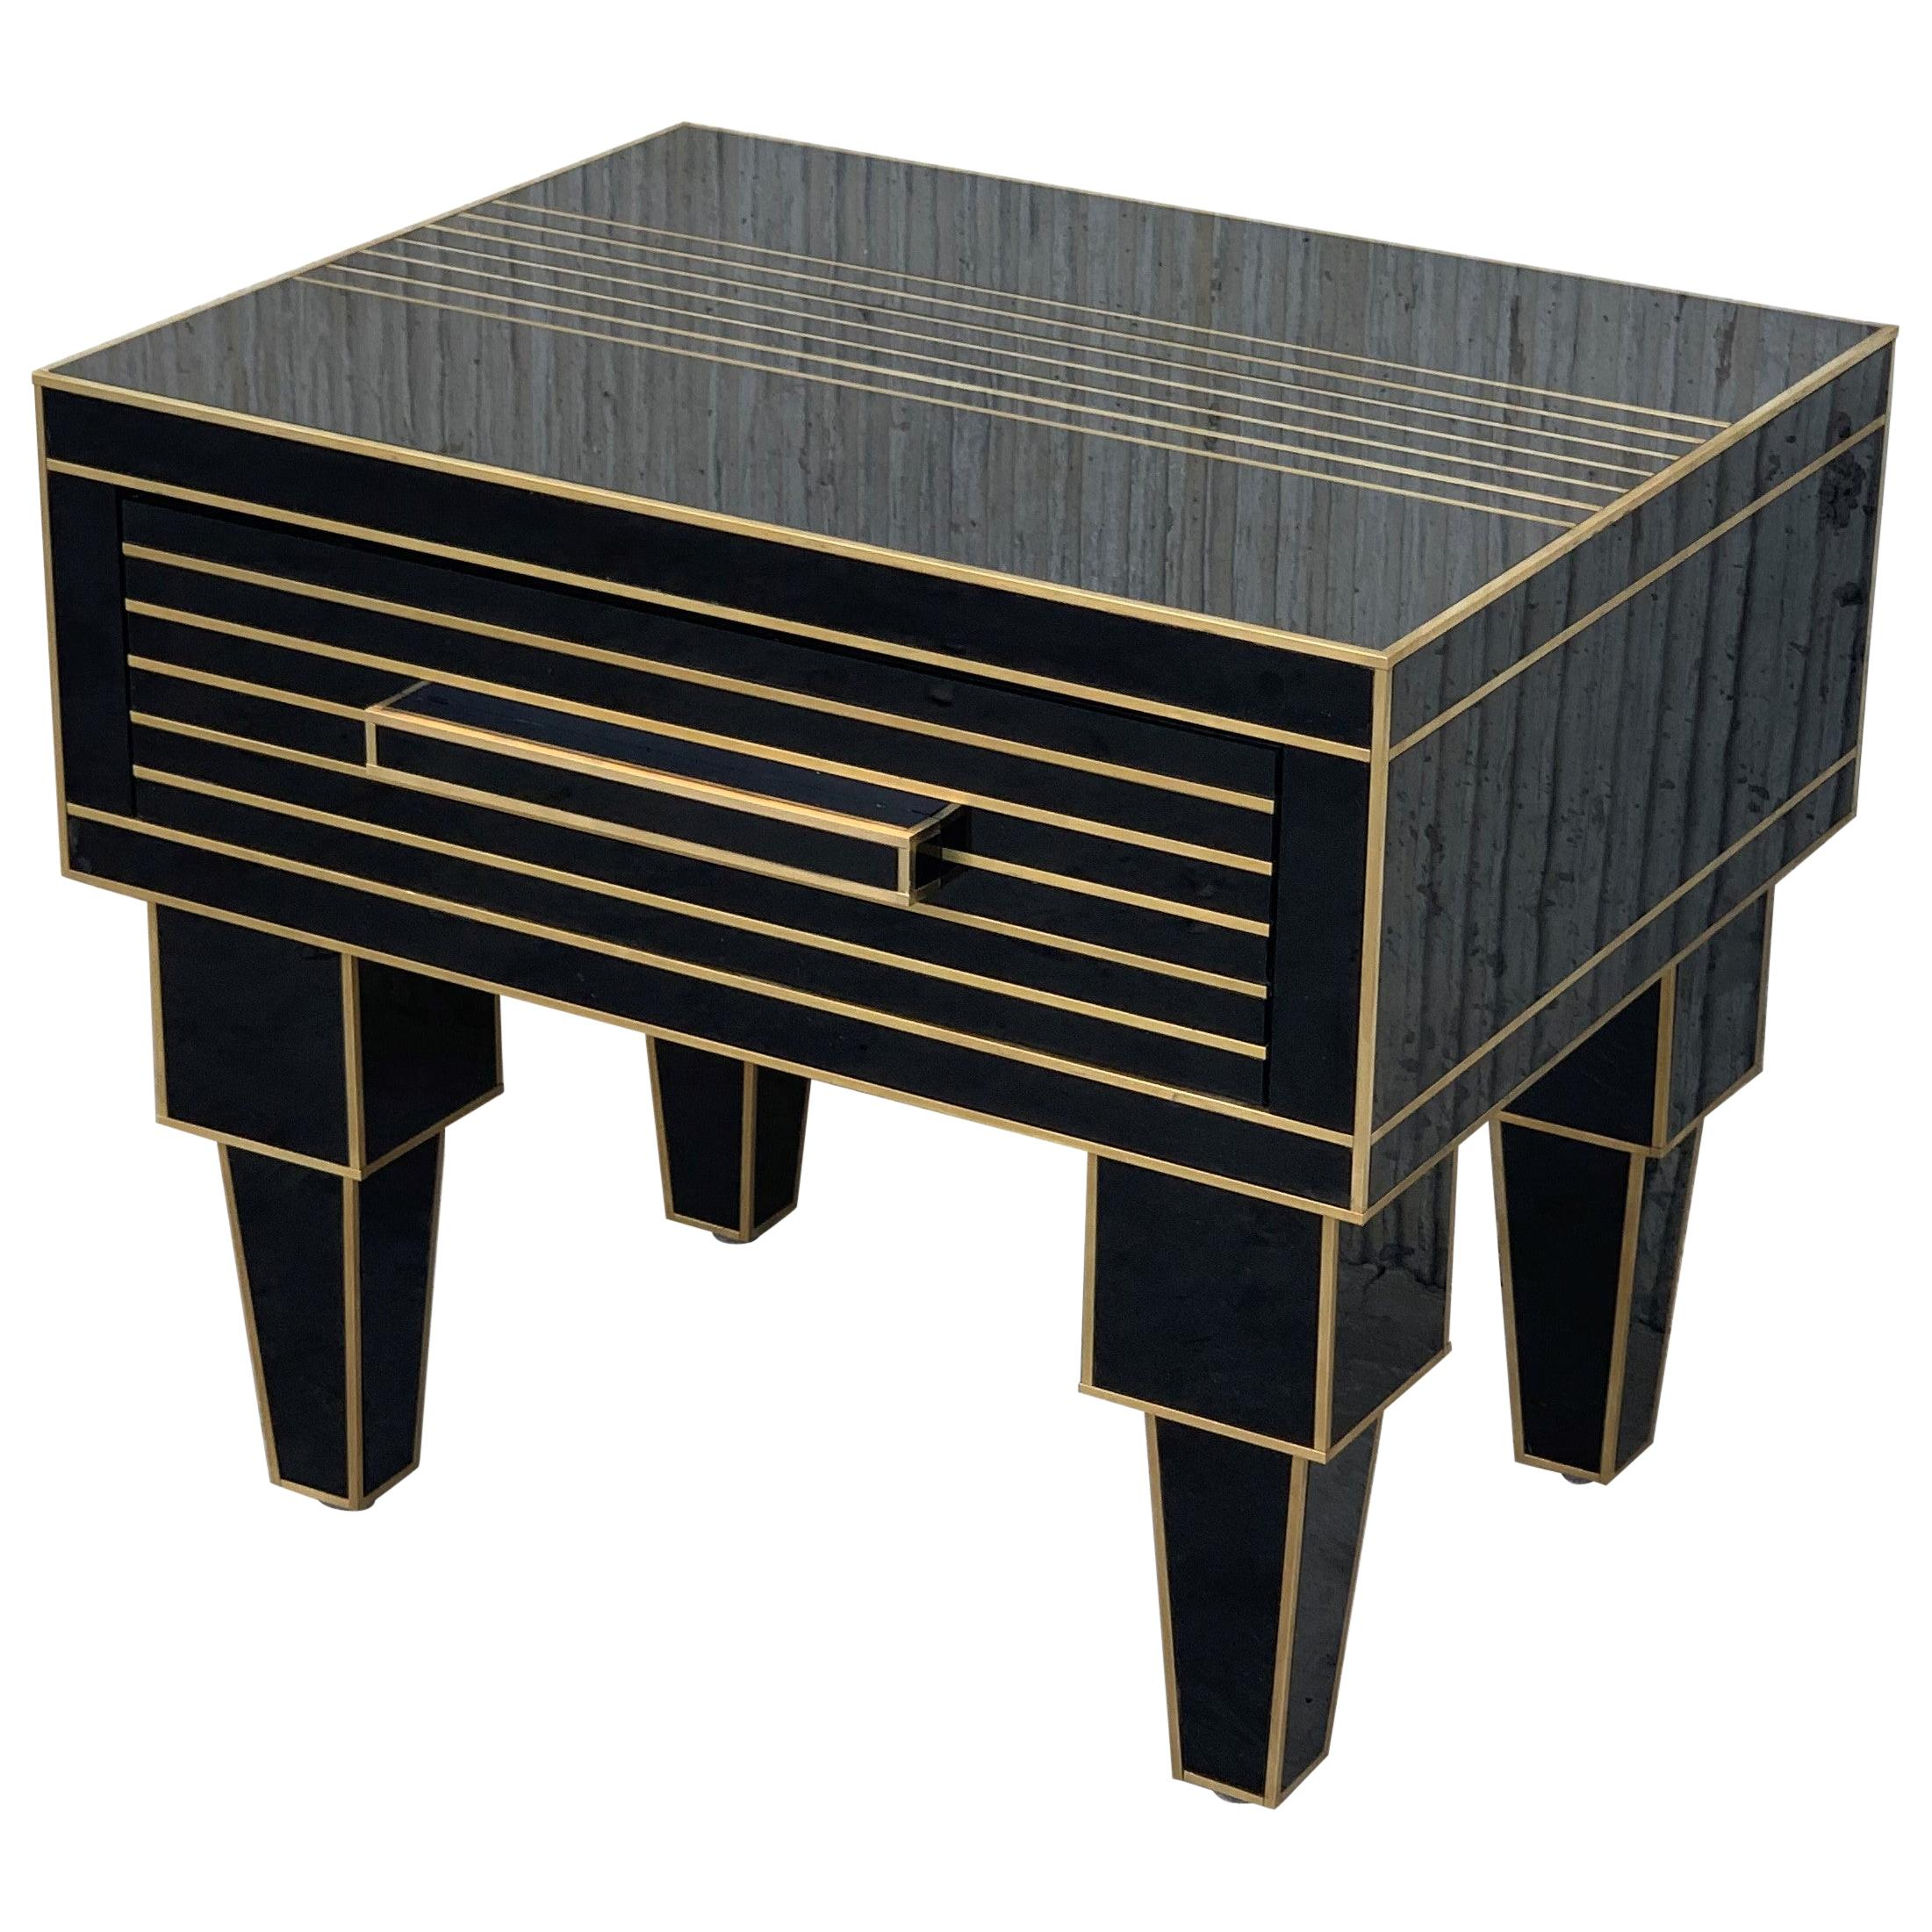 New Pair of Mirrored Low Nightstand in Black Mirror and Chrome with Drawer